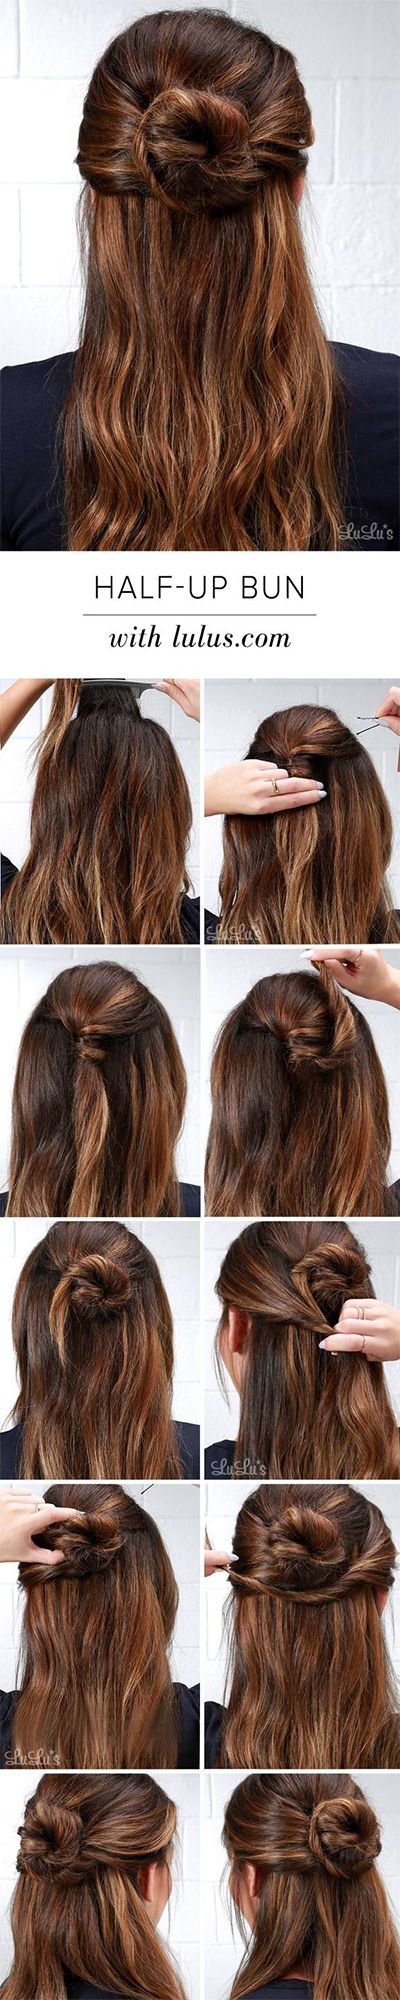 how to properly create the half-up-half-down bun (the hun)